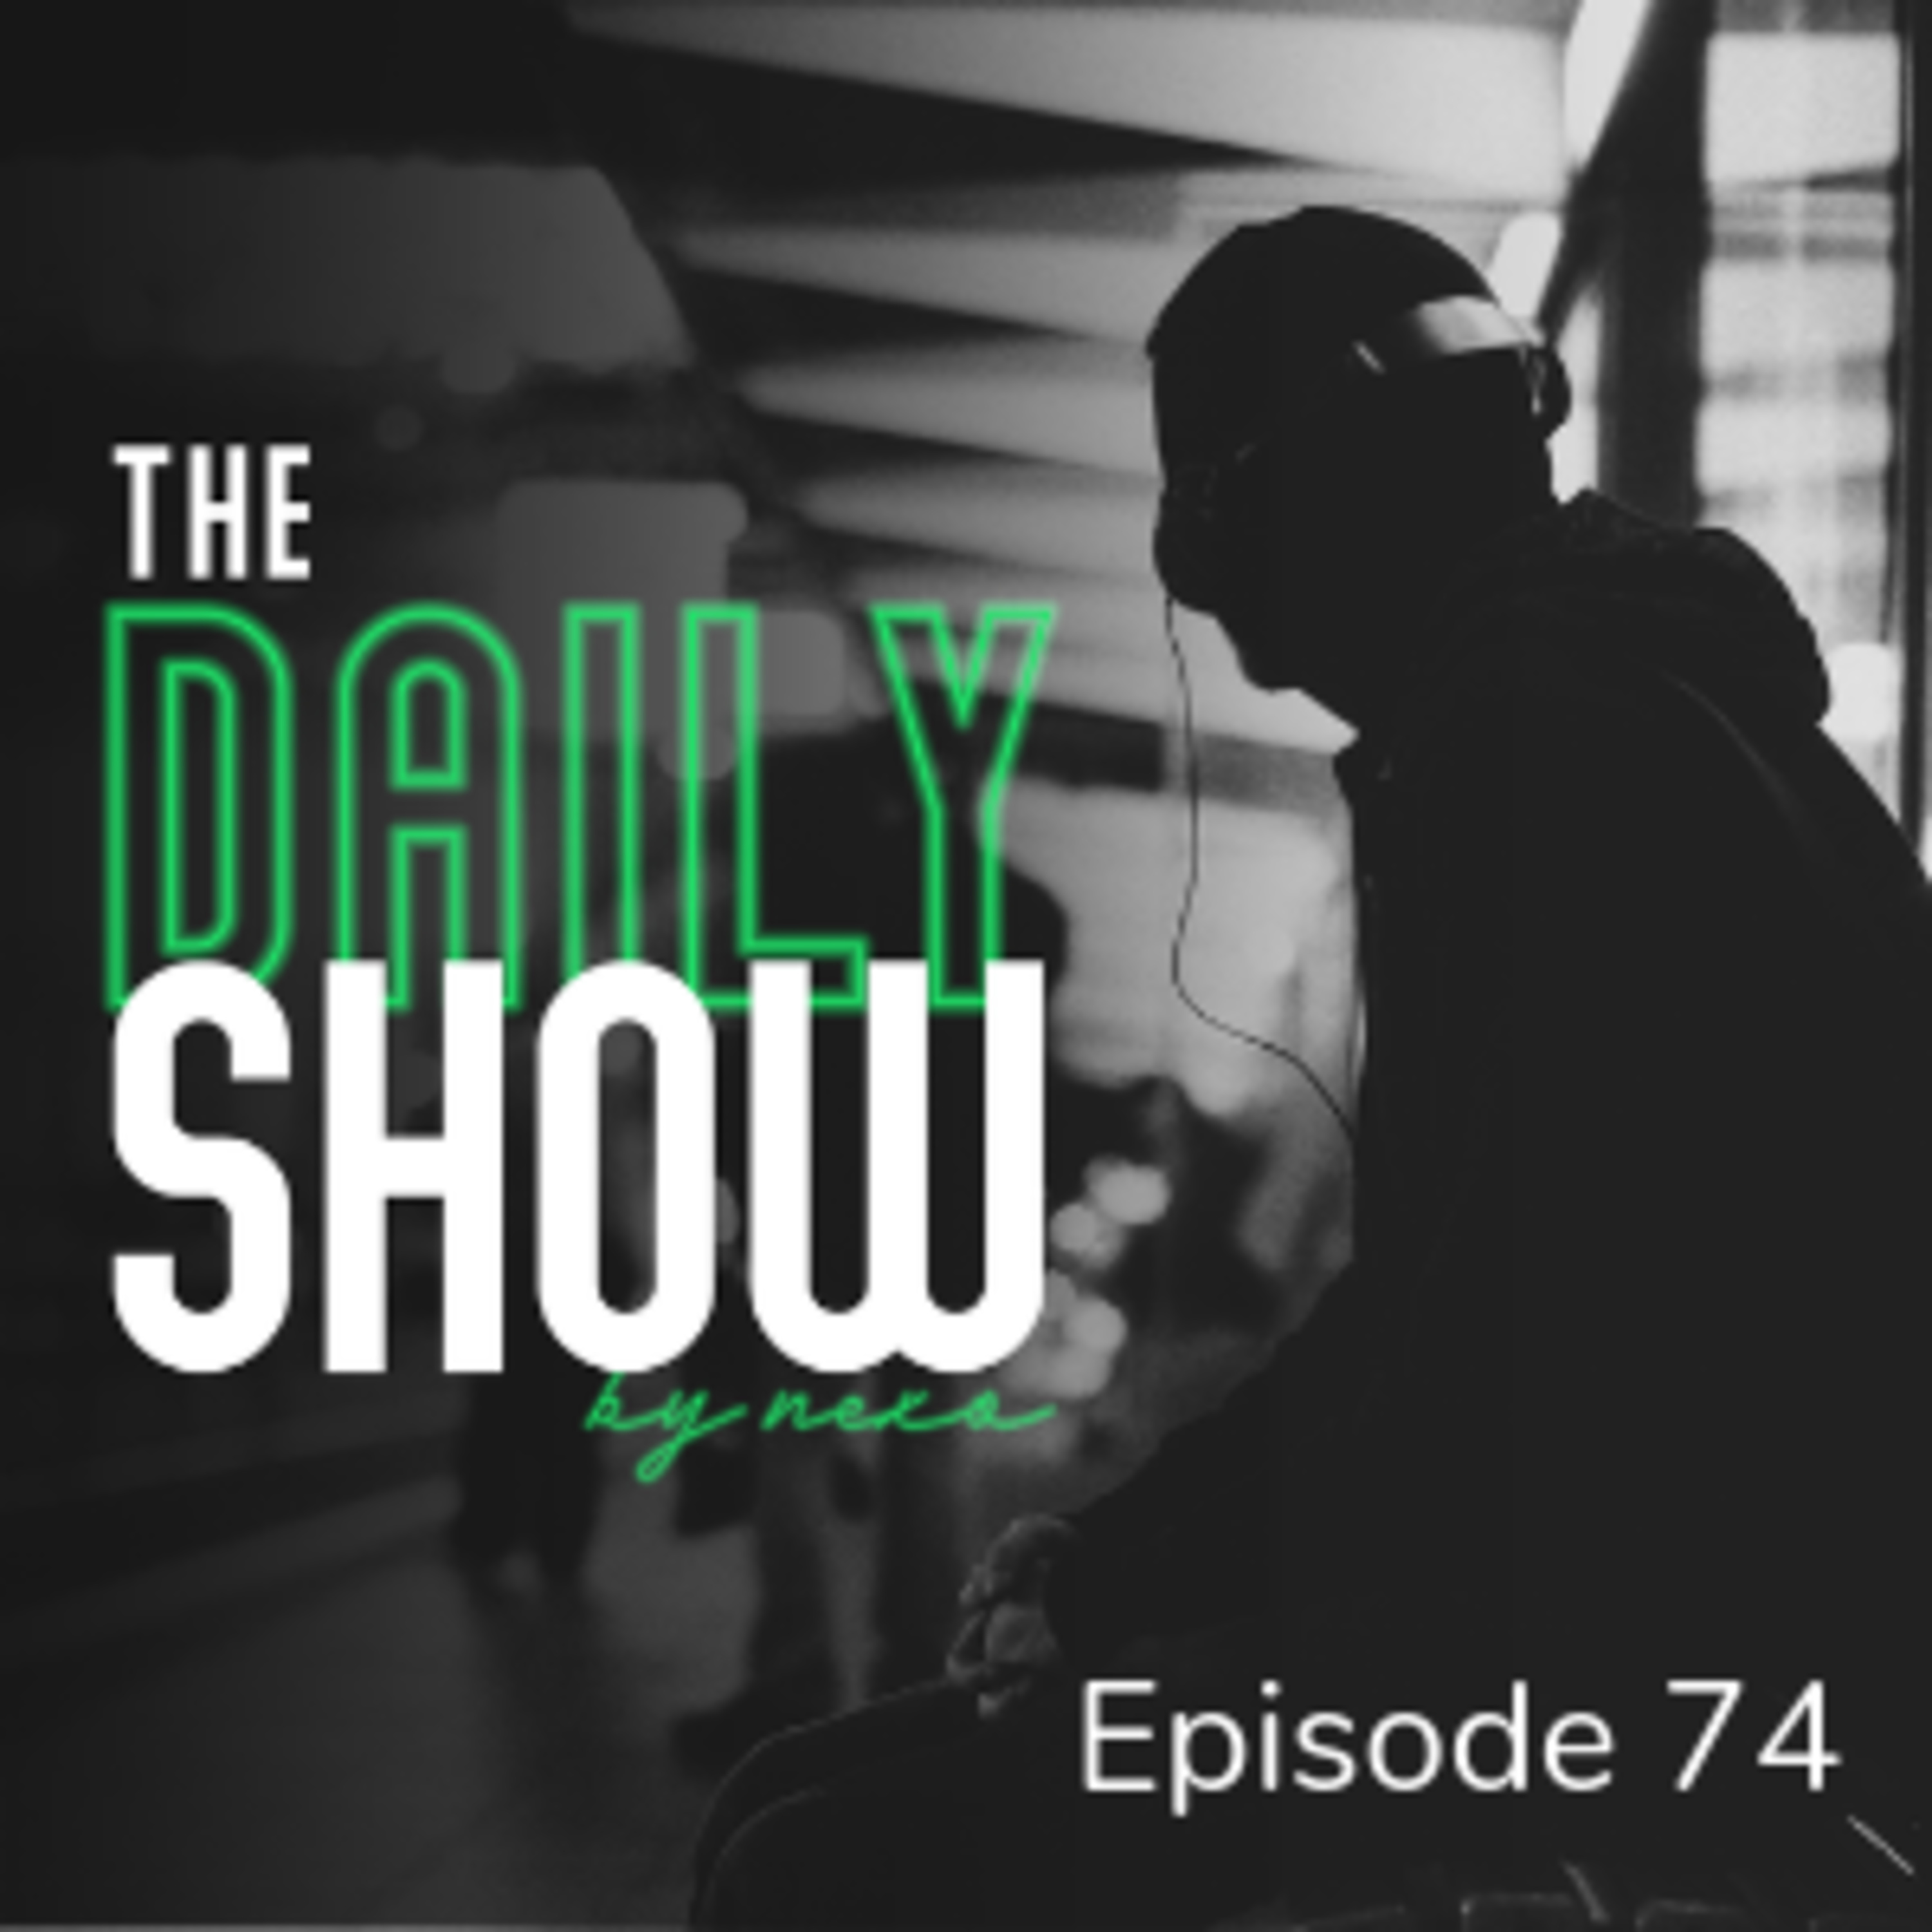 Daily Show: Episode 74 - Are You Starting Social Media Marketing in 2019? 📱